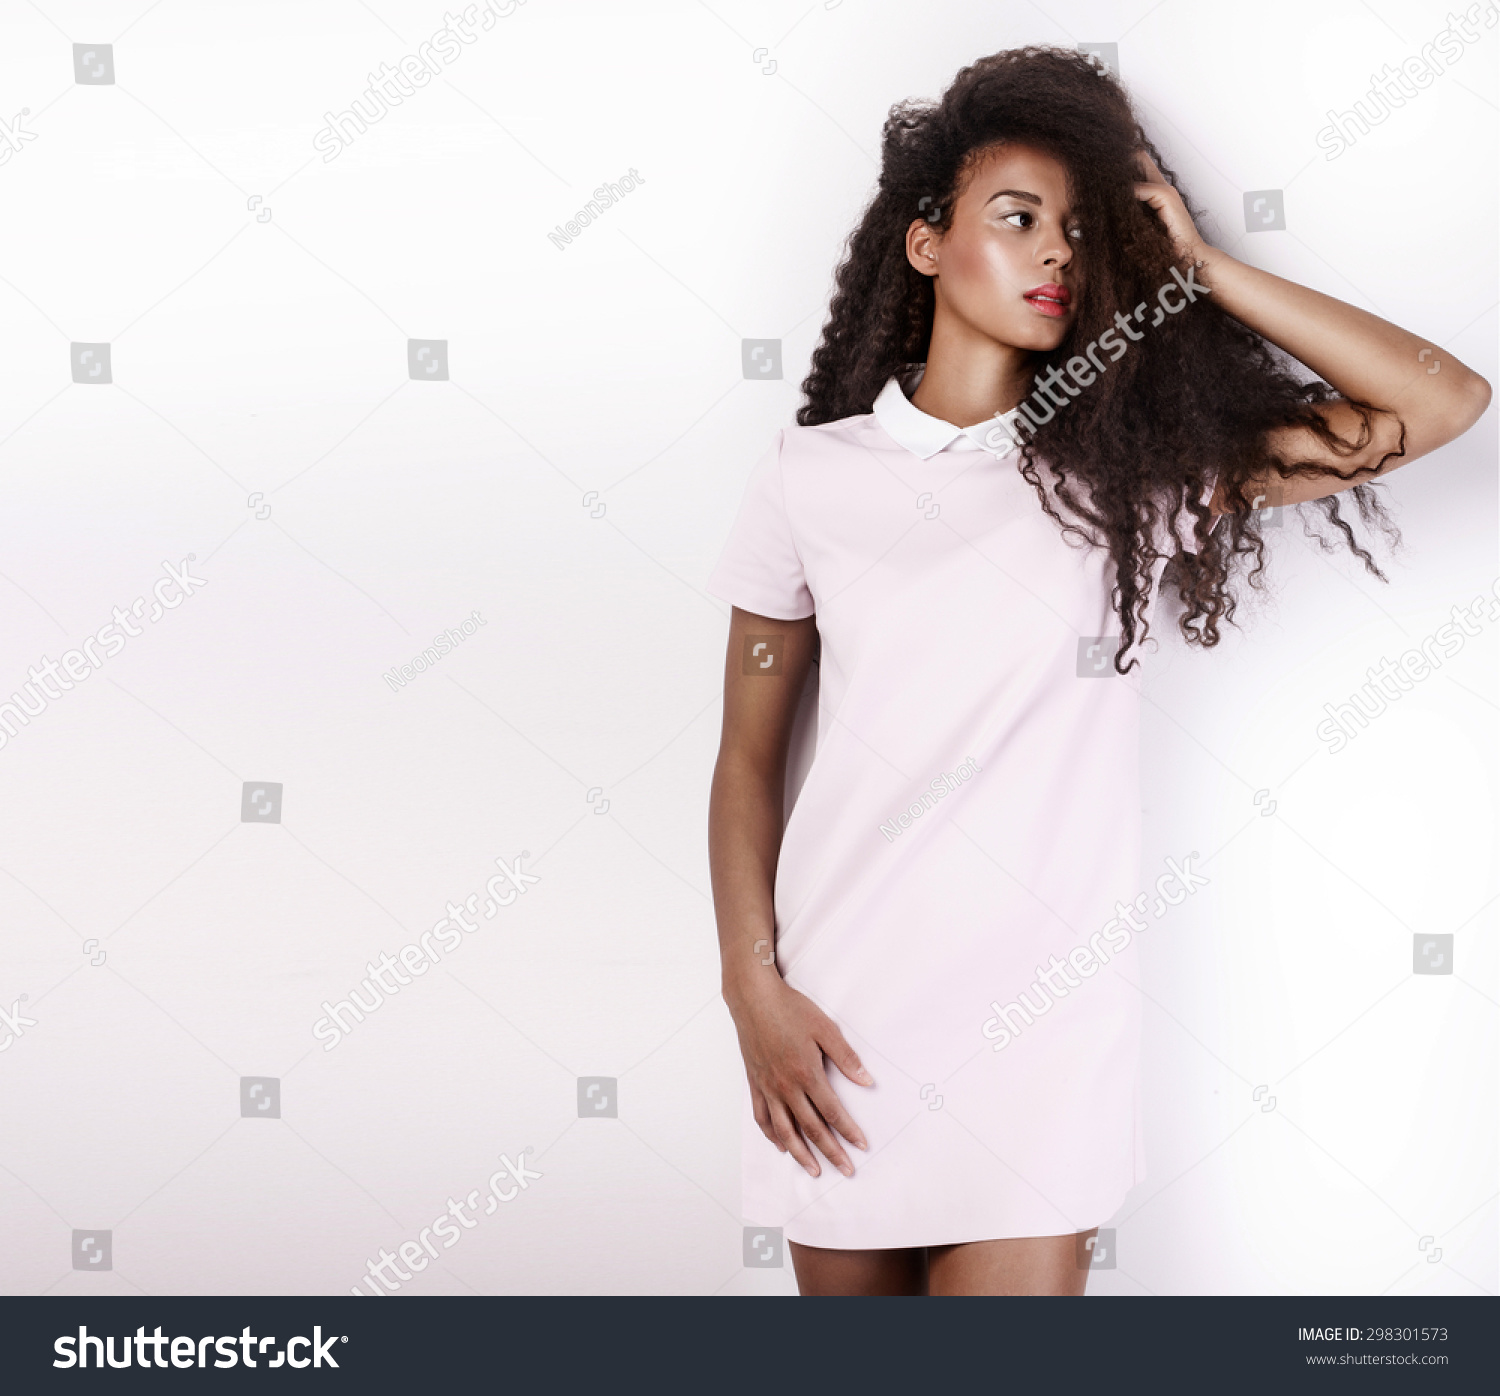 e0259c28297 Beautiful young african american woman with long healthy hair posing in  studio wearing fashionable dress.